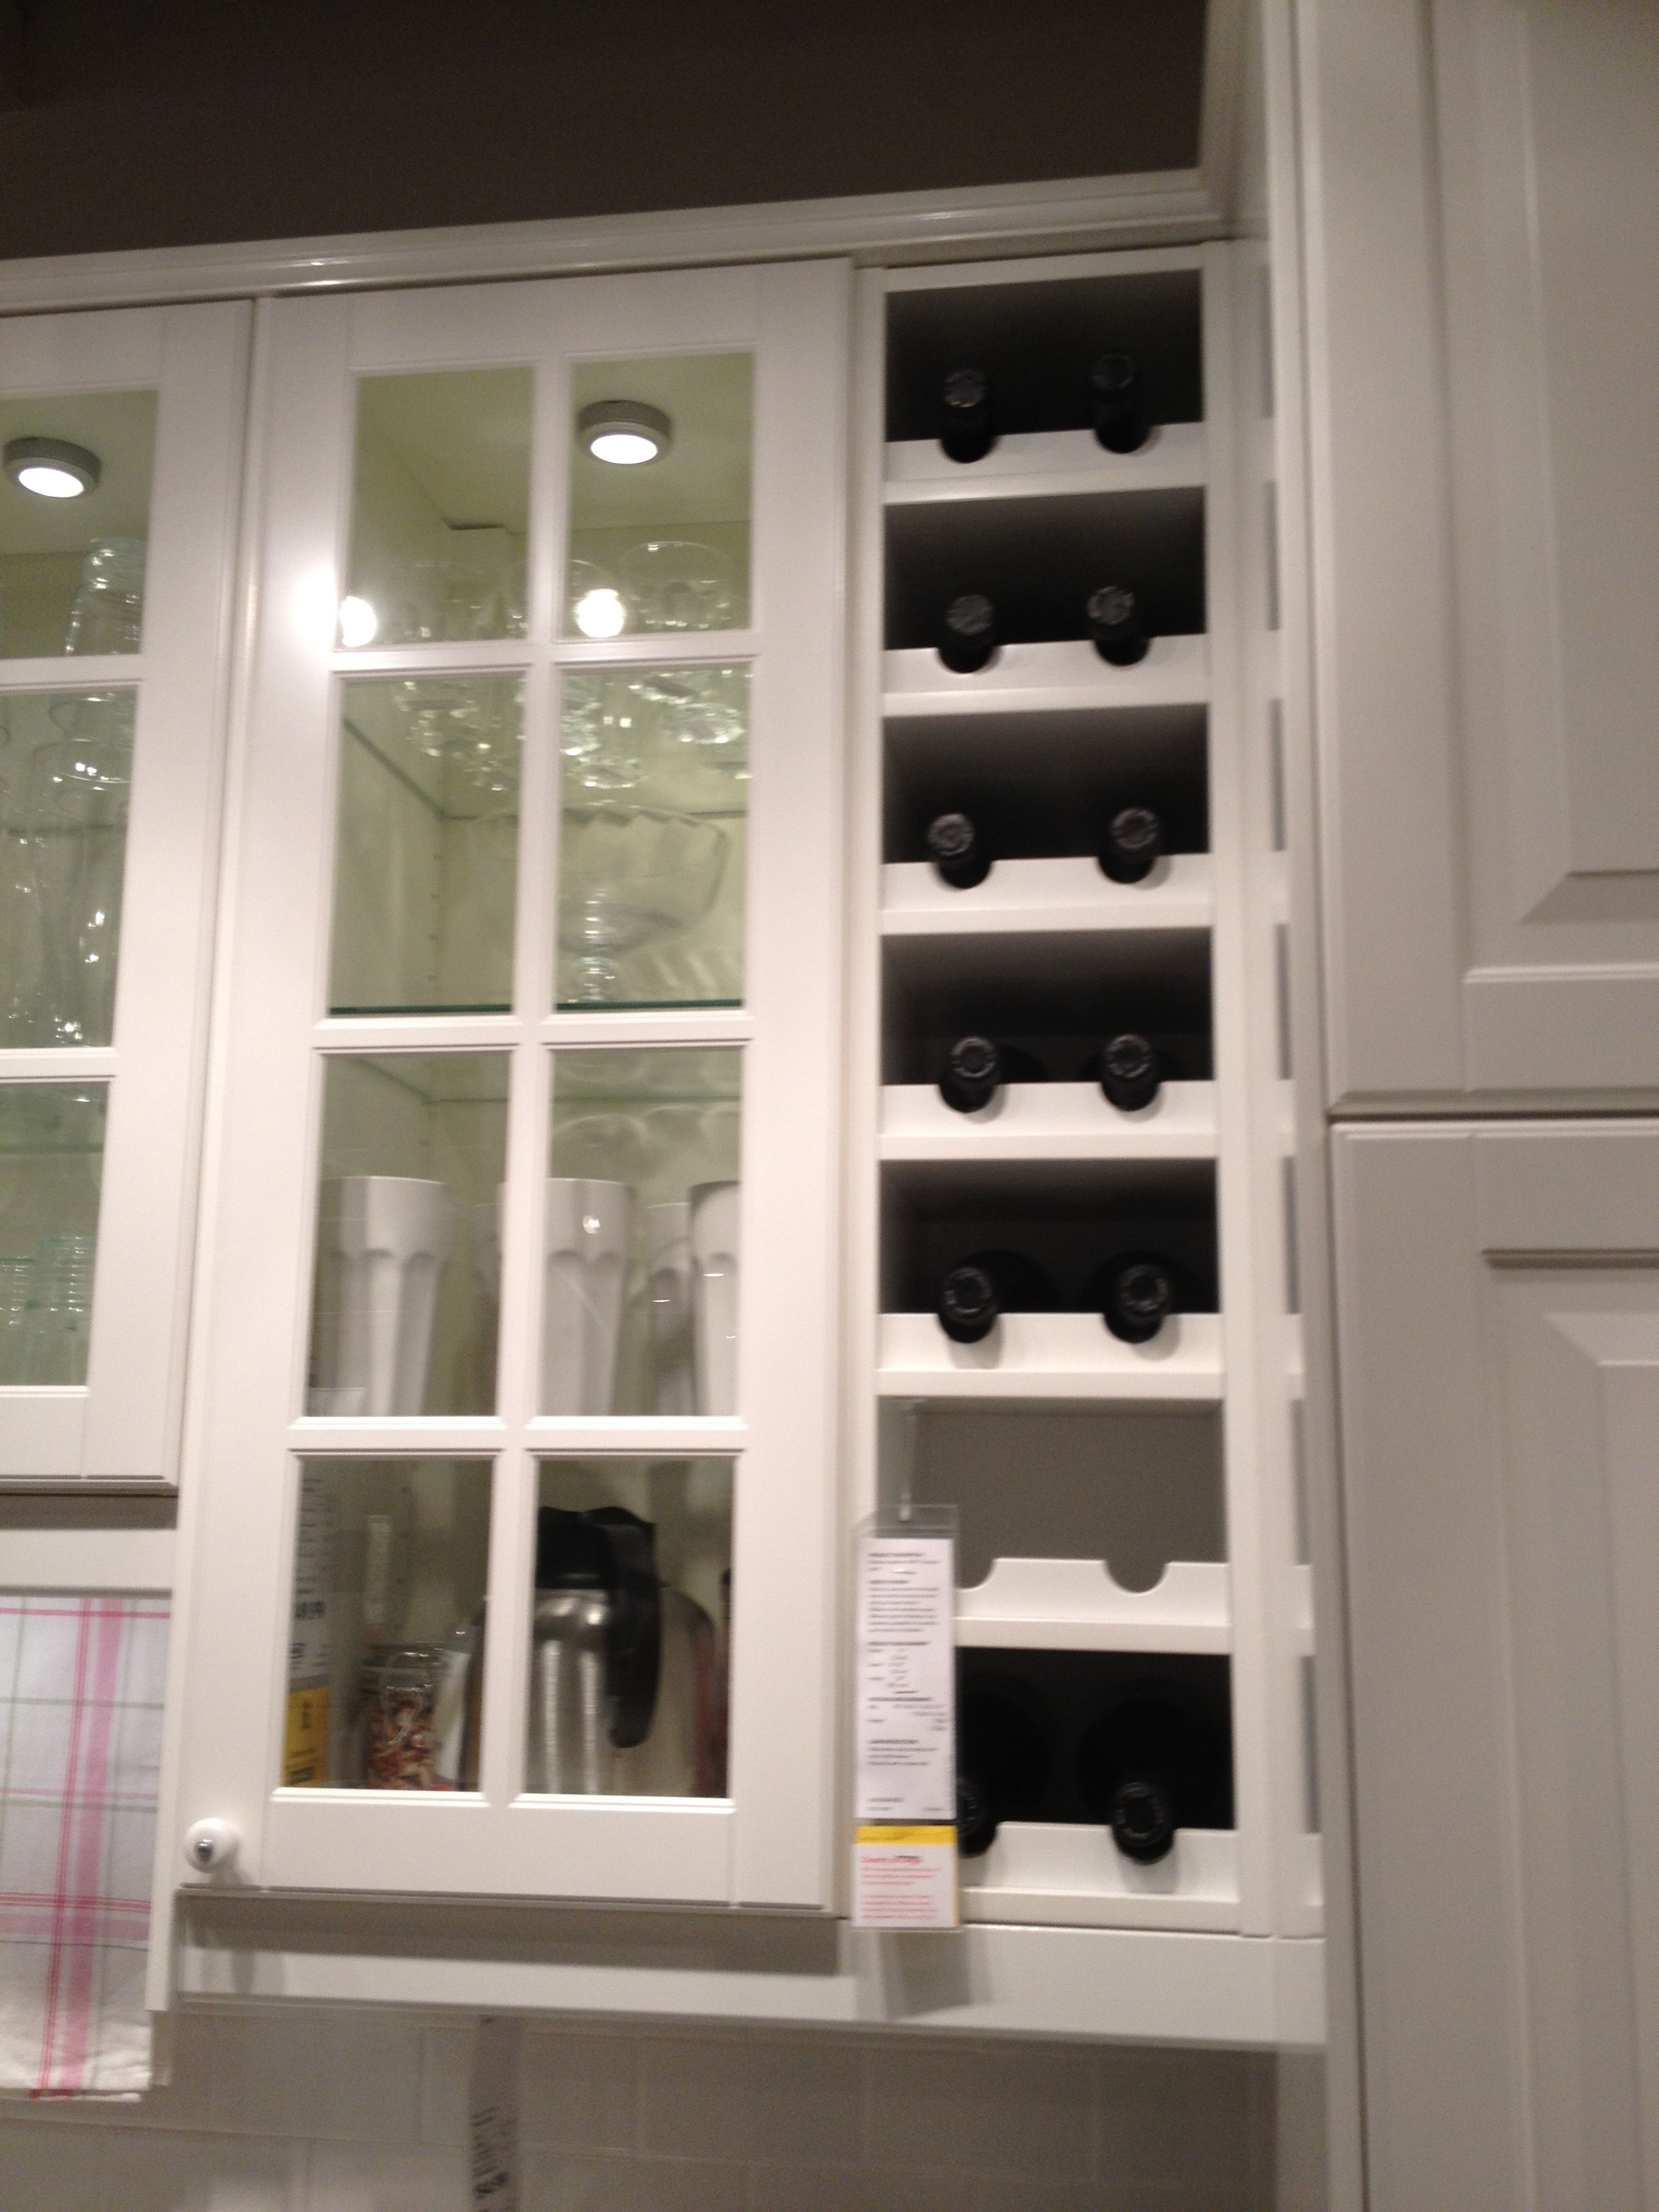 Built in wine racks for kitchen cabinets - Wall Mount White Wood Opened Built In Wine Rack With White Wood Cabinet Glass Door In Beautiful Furniture